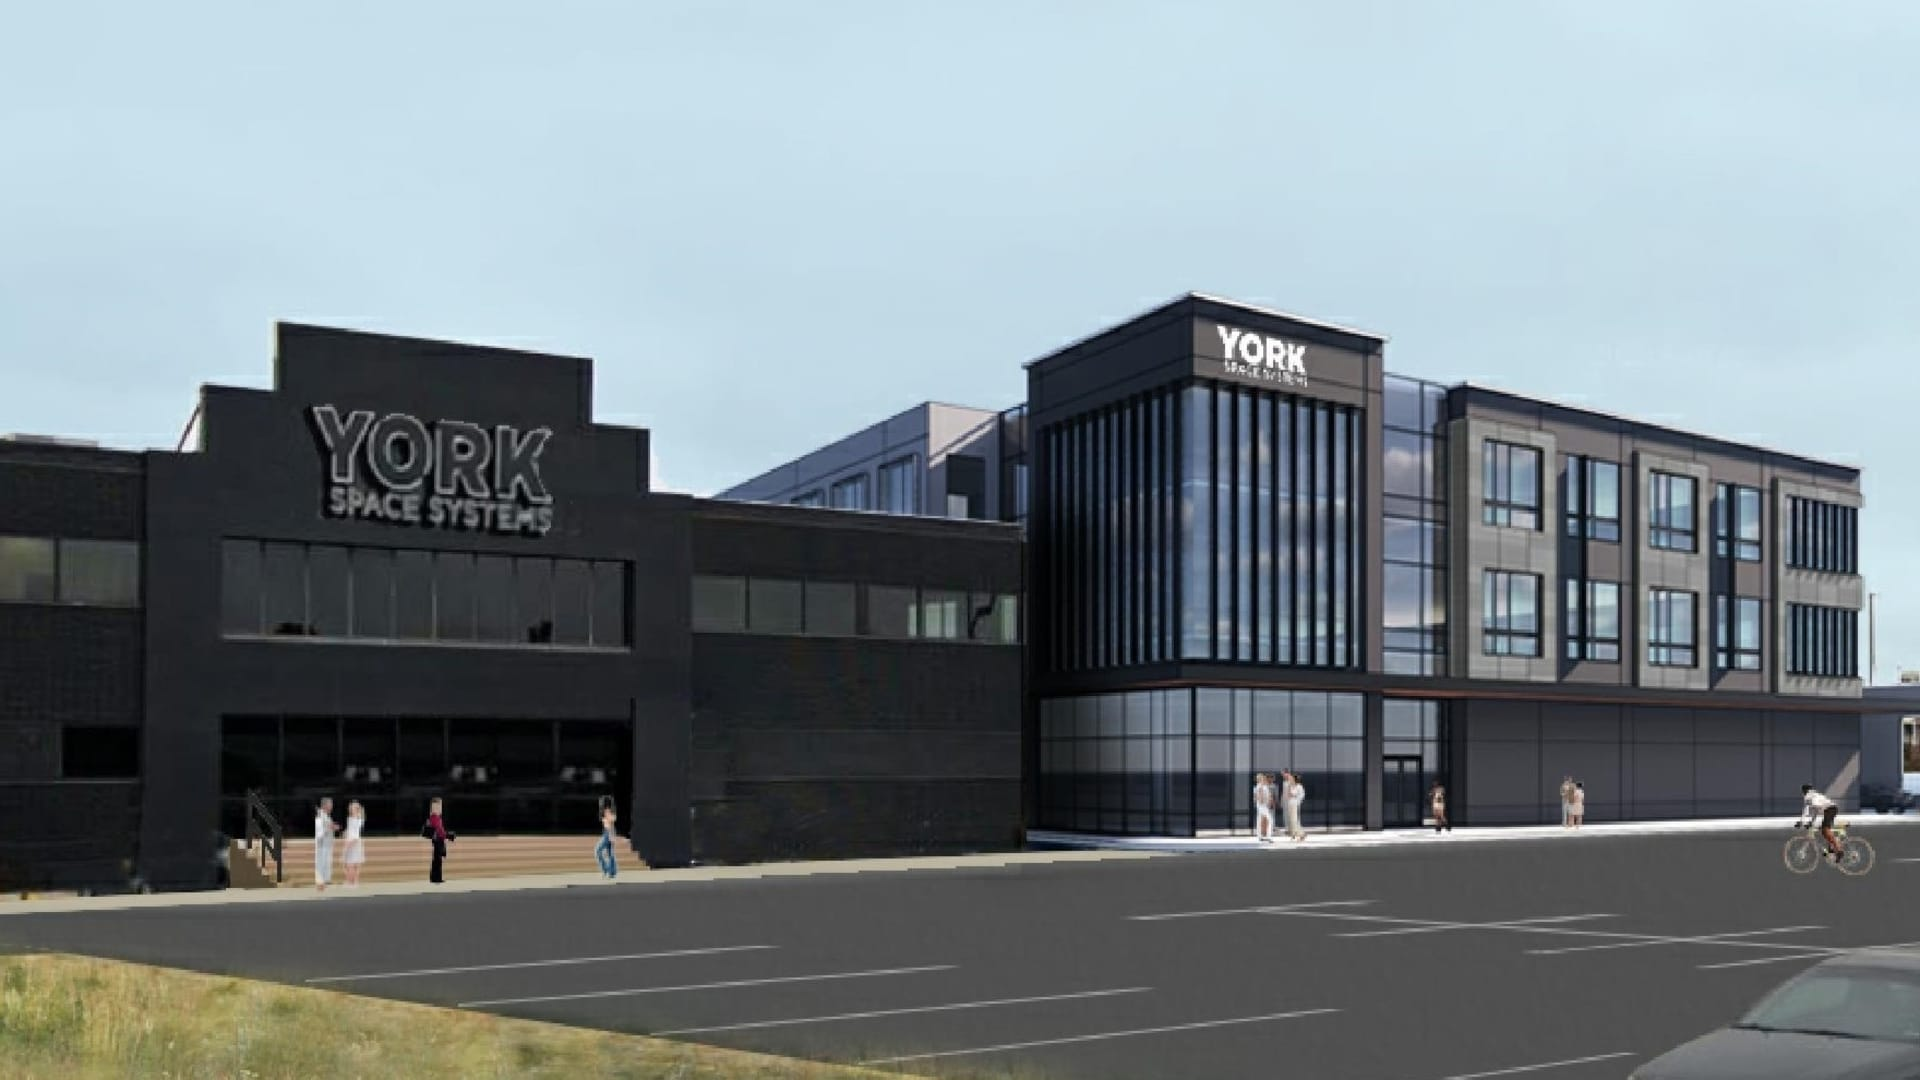 The company's existing building on the left, with a rendering of the planned expansion on the right.